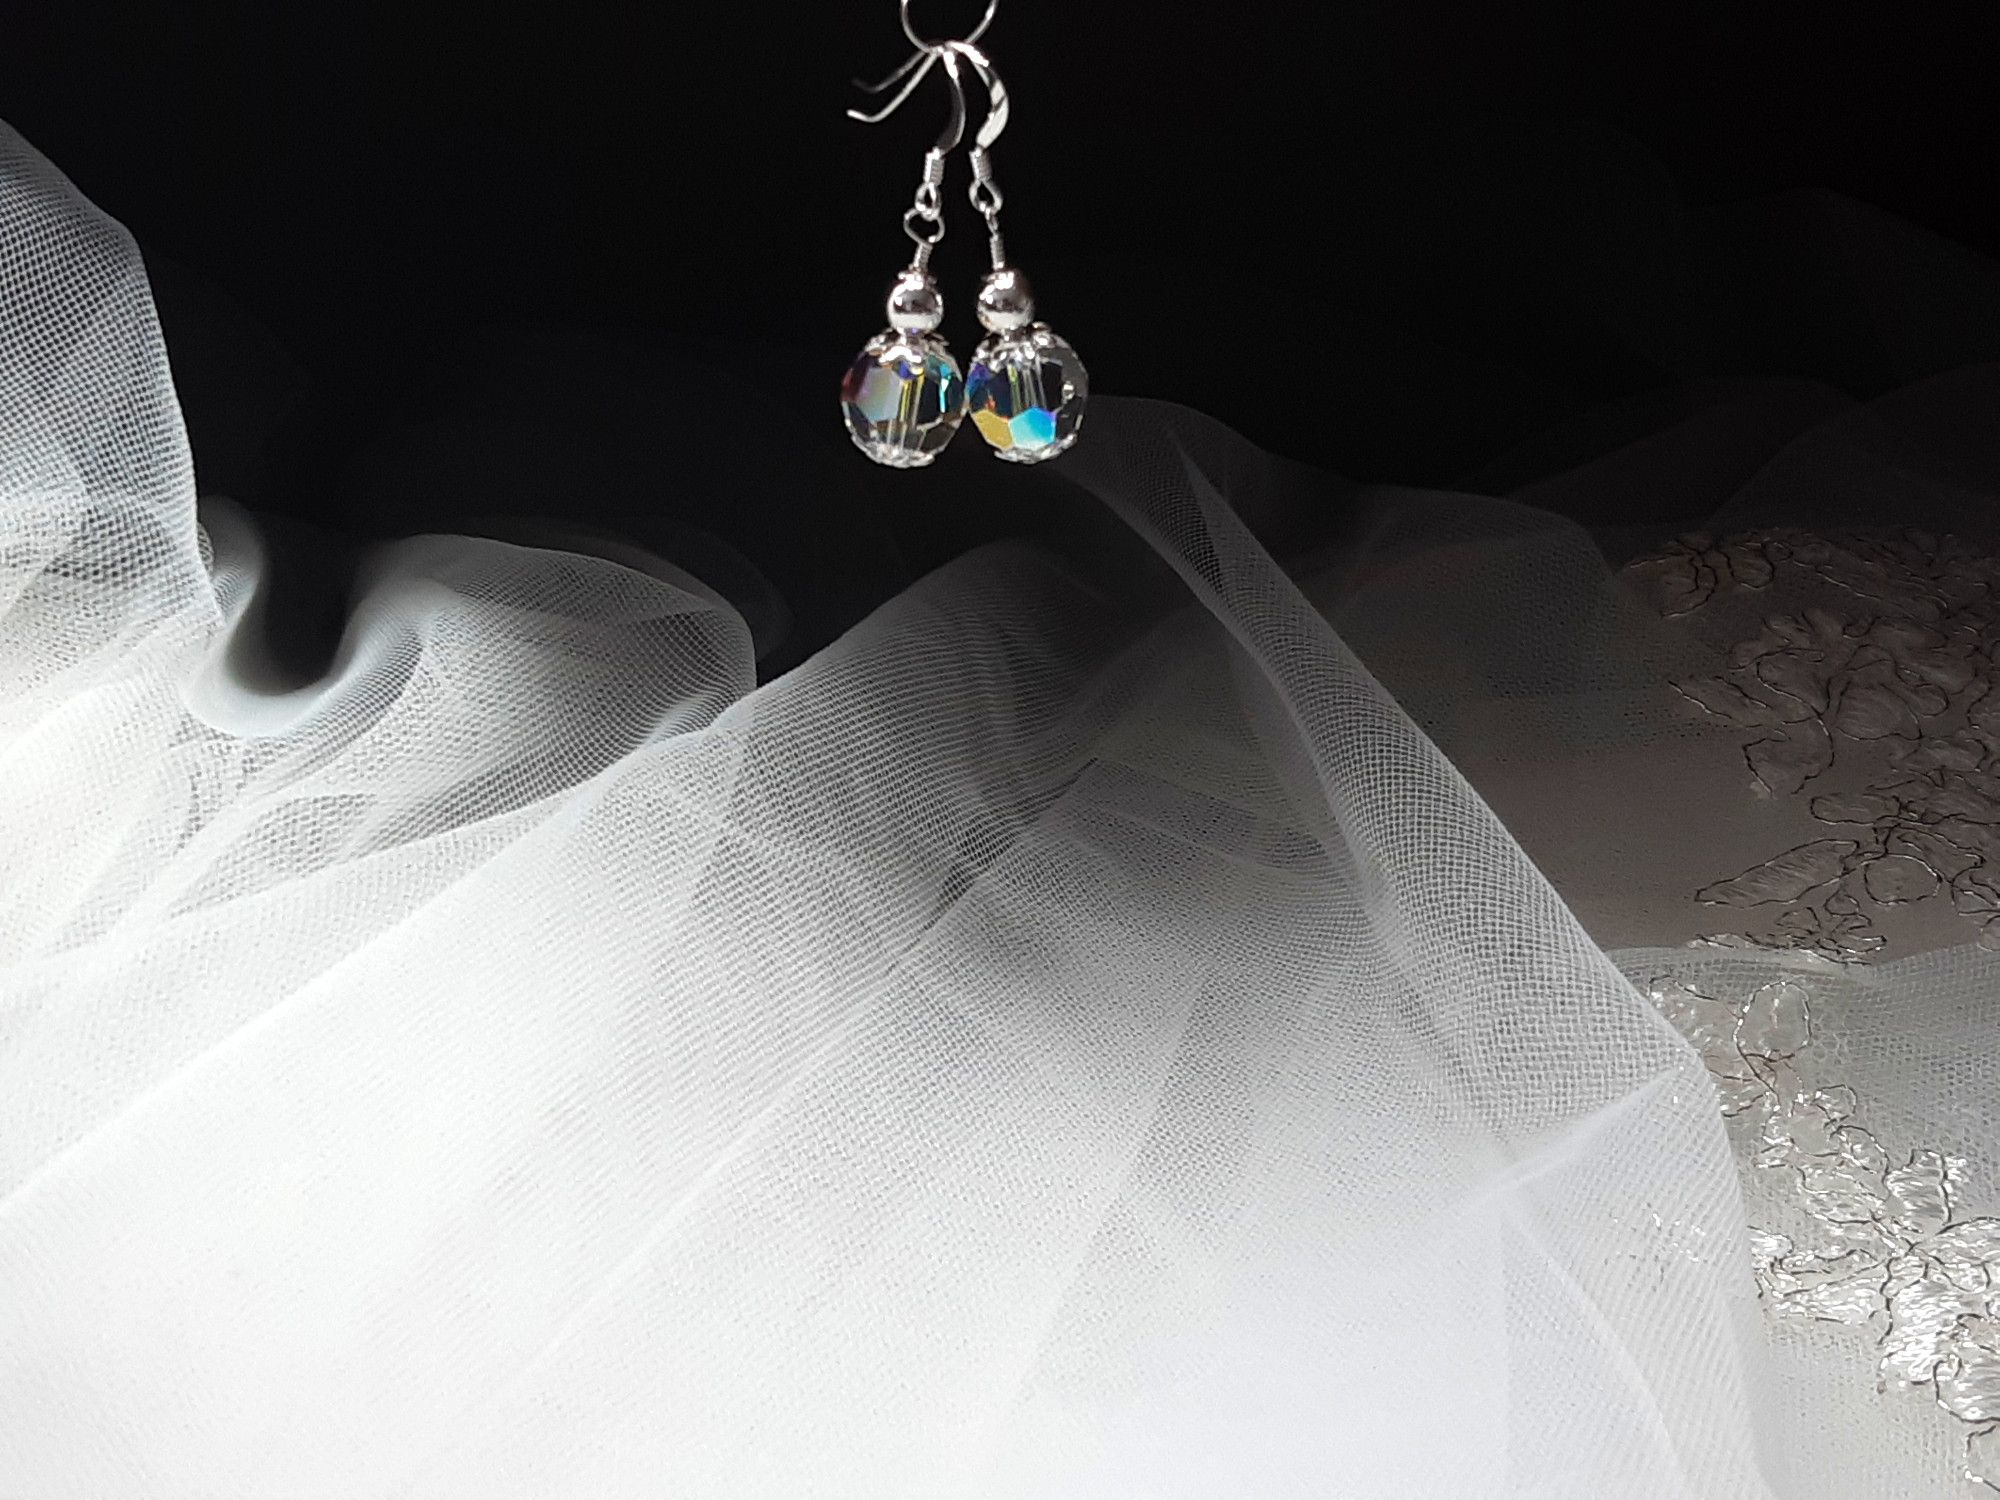 Occasion-bridal-earrings with swarovski crystal+sterling silver-12.jpg